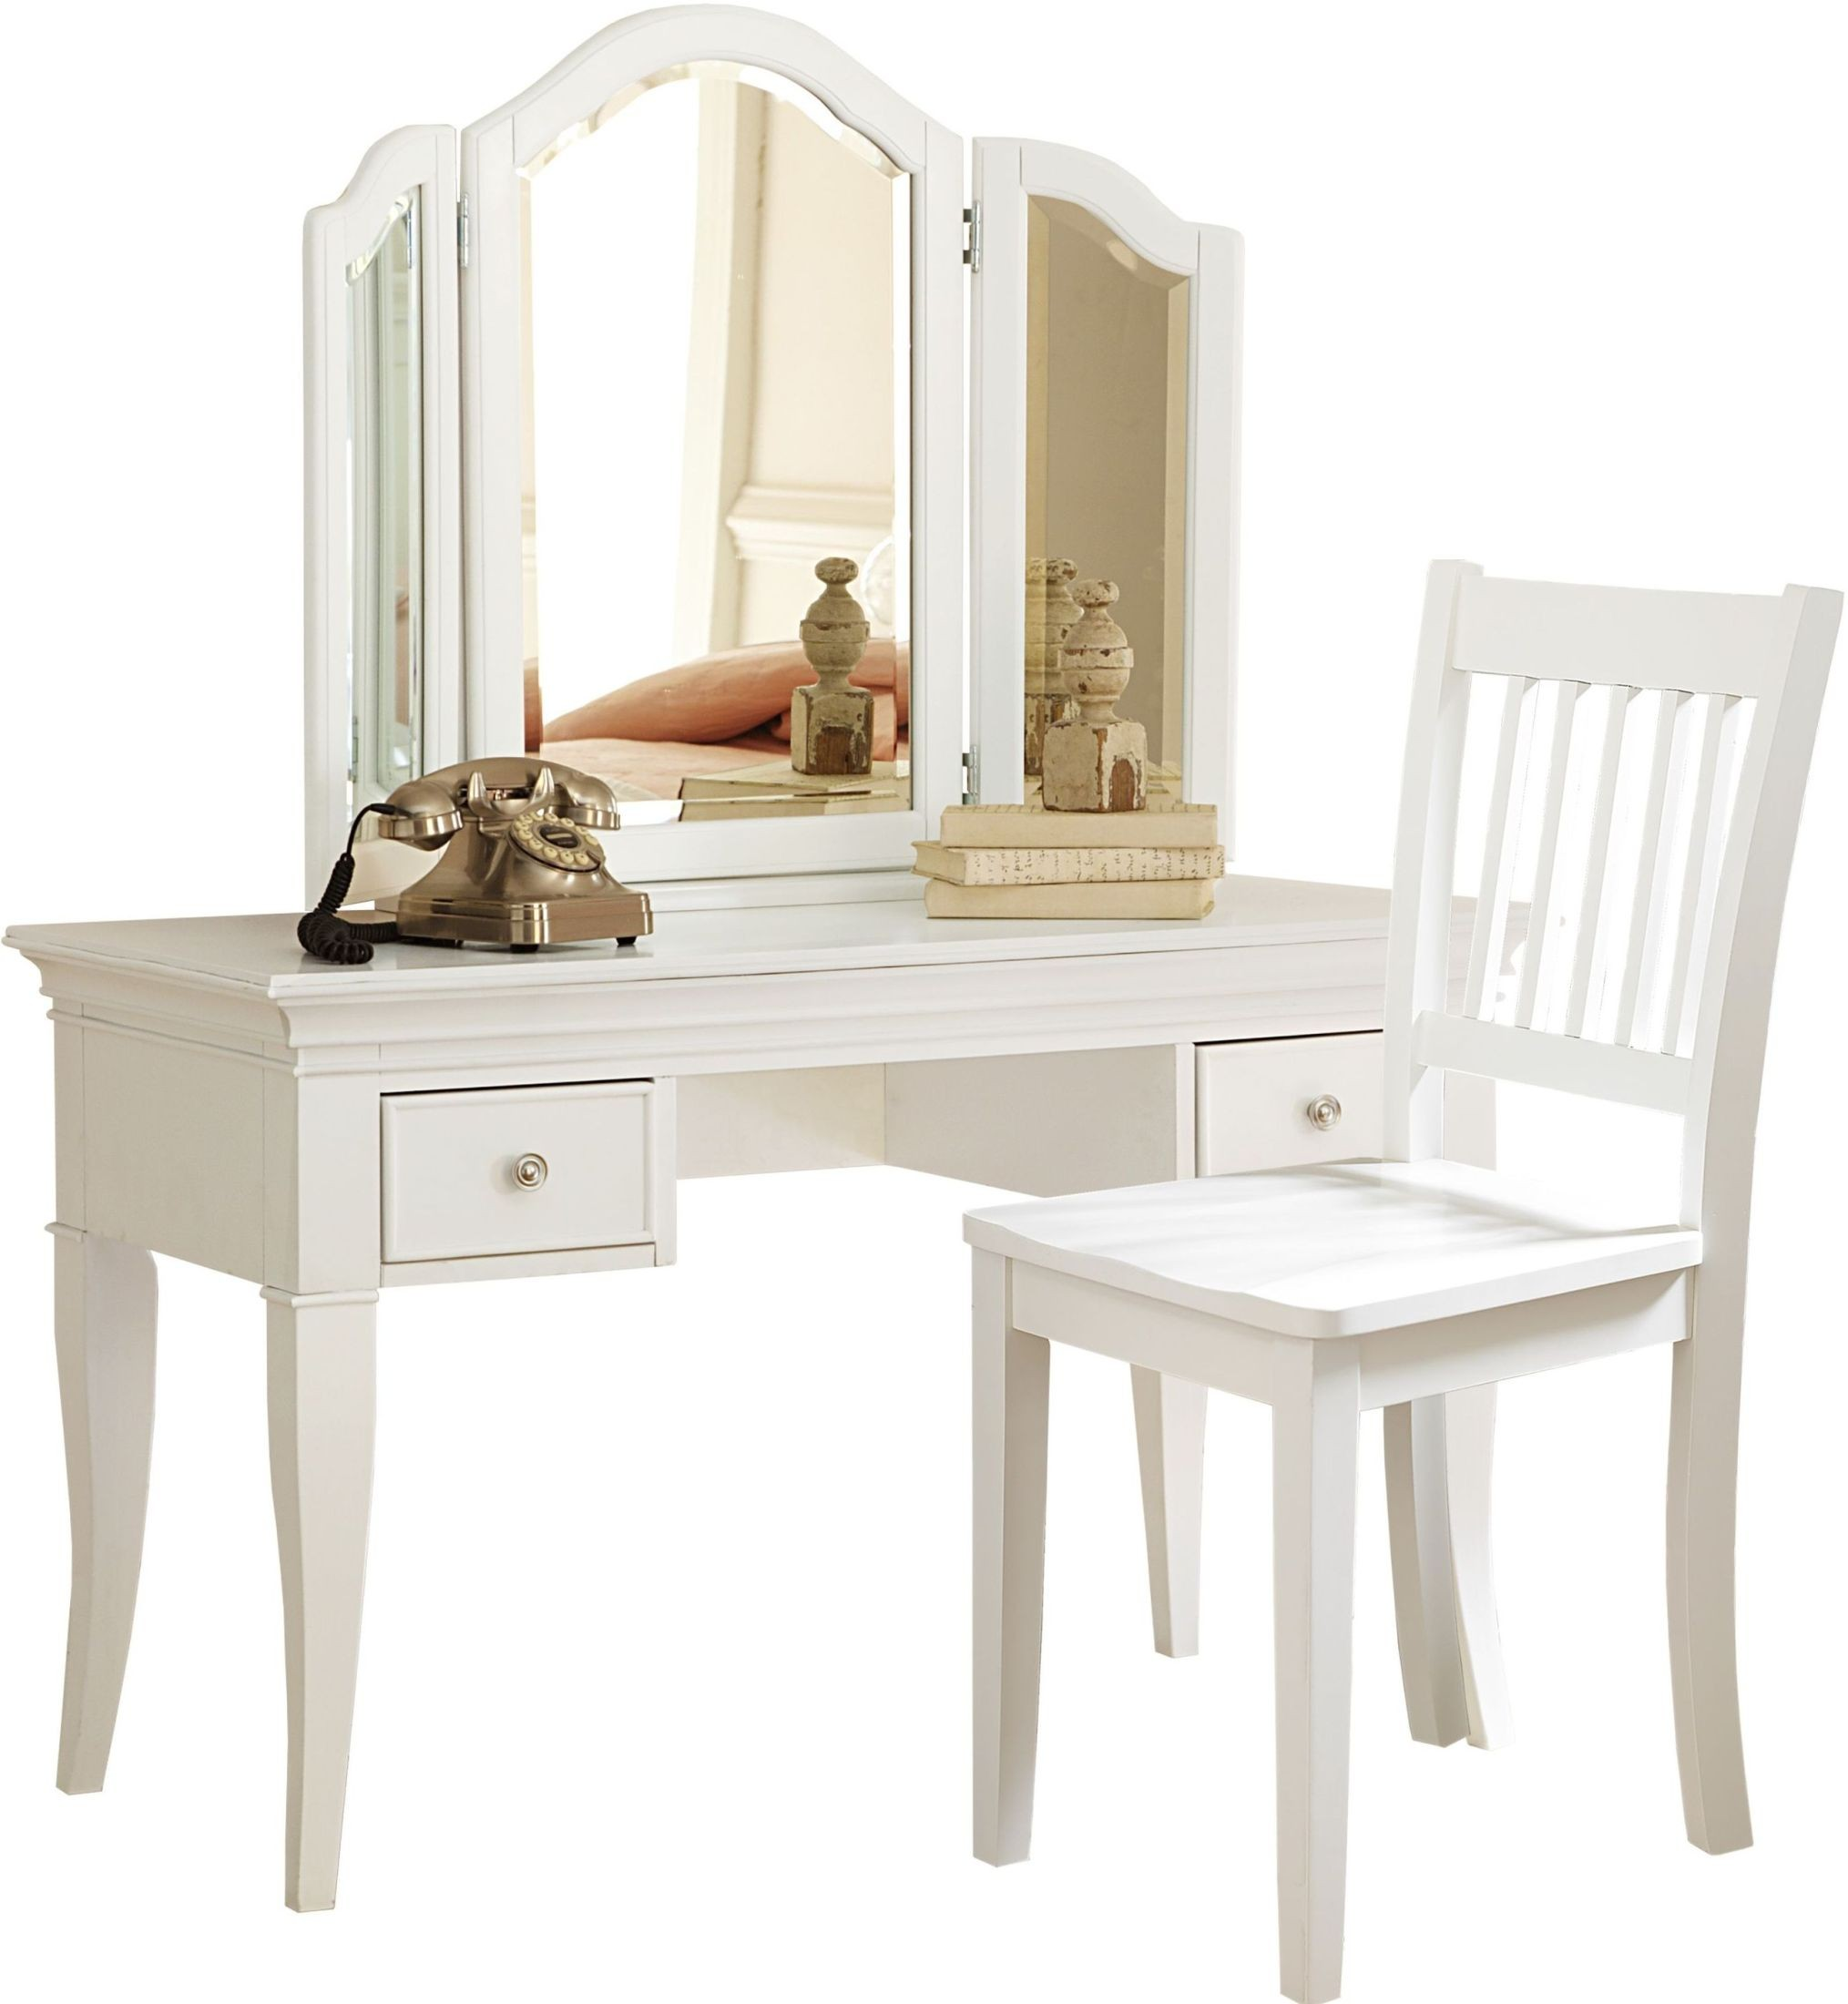 Vanity Desk Chair Walnut Street White Desk And Storage Vanity With Mirror